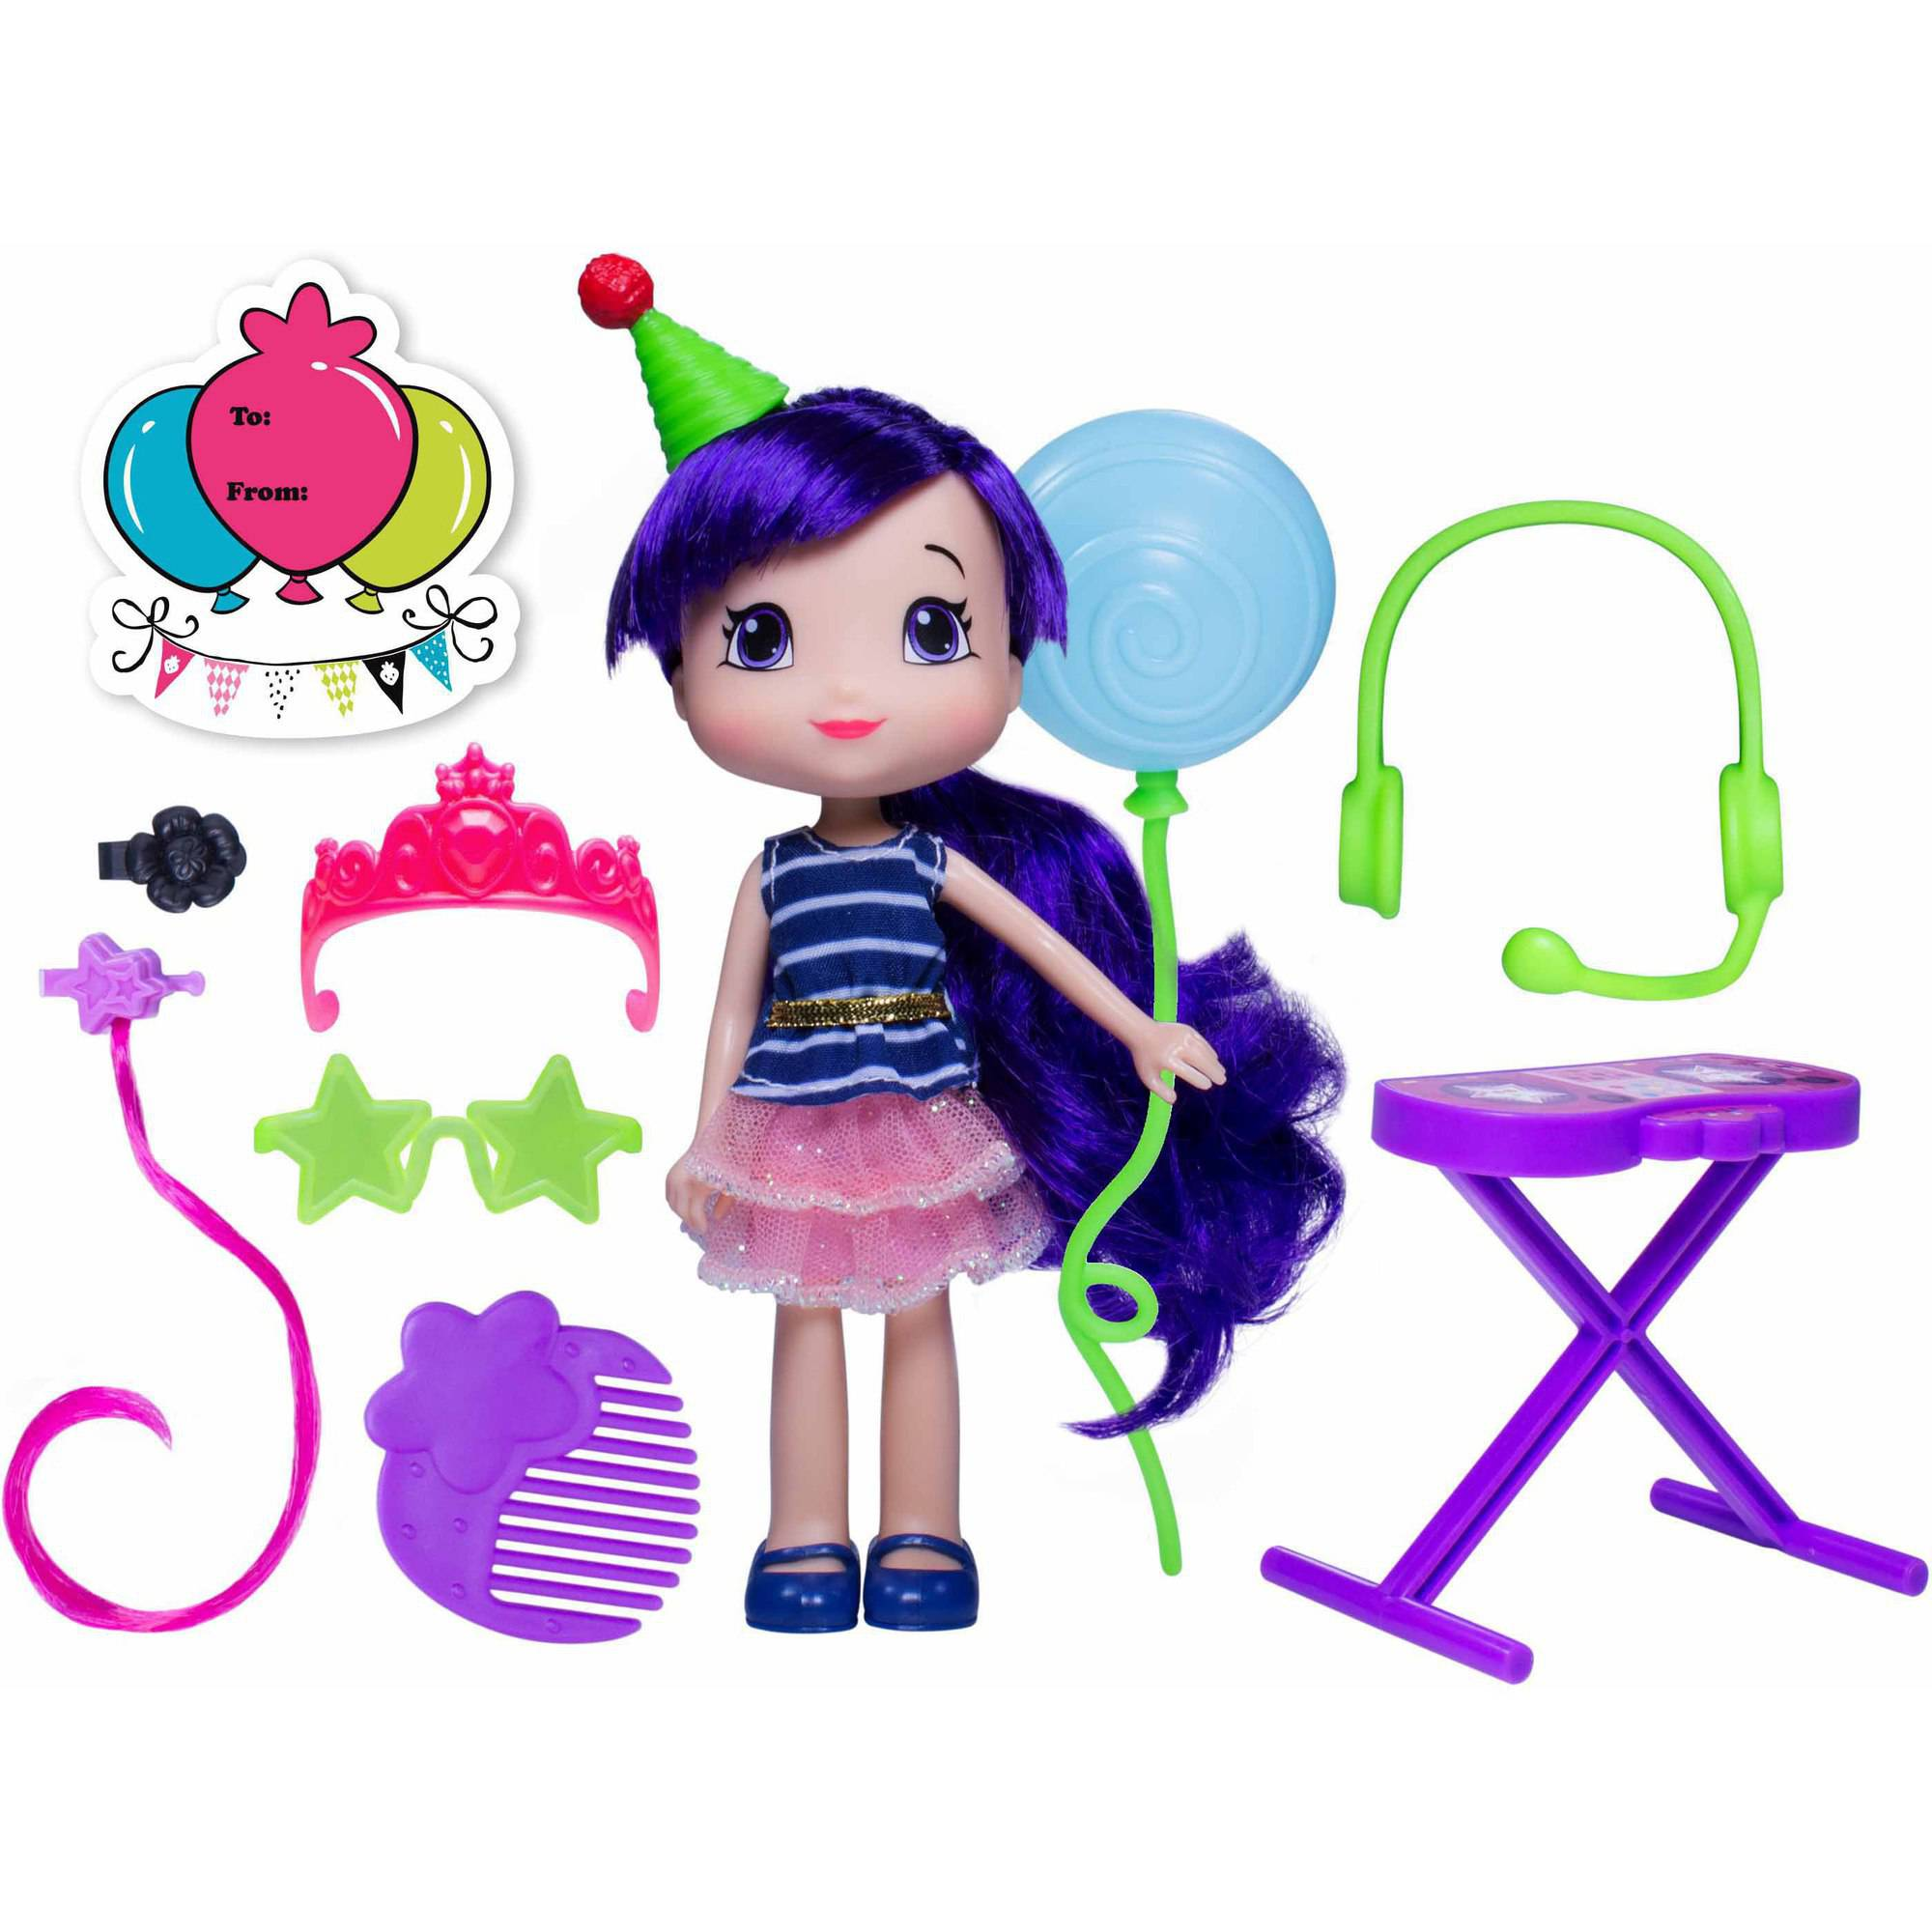 Strawberry Shortcake Surprise Party Doll, Cherry Jam